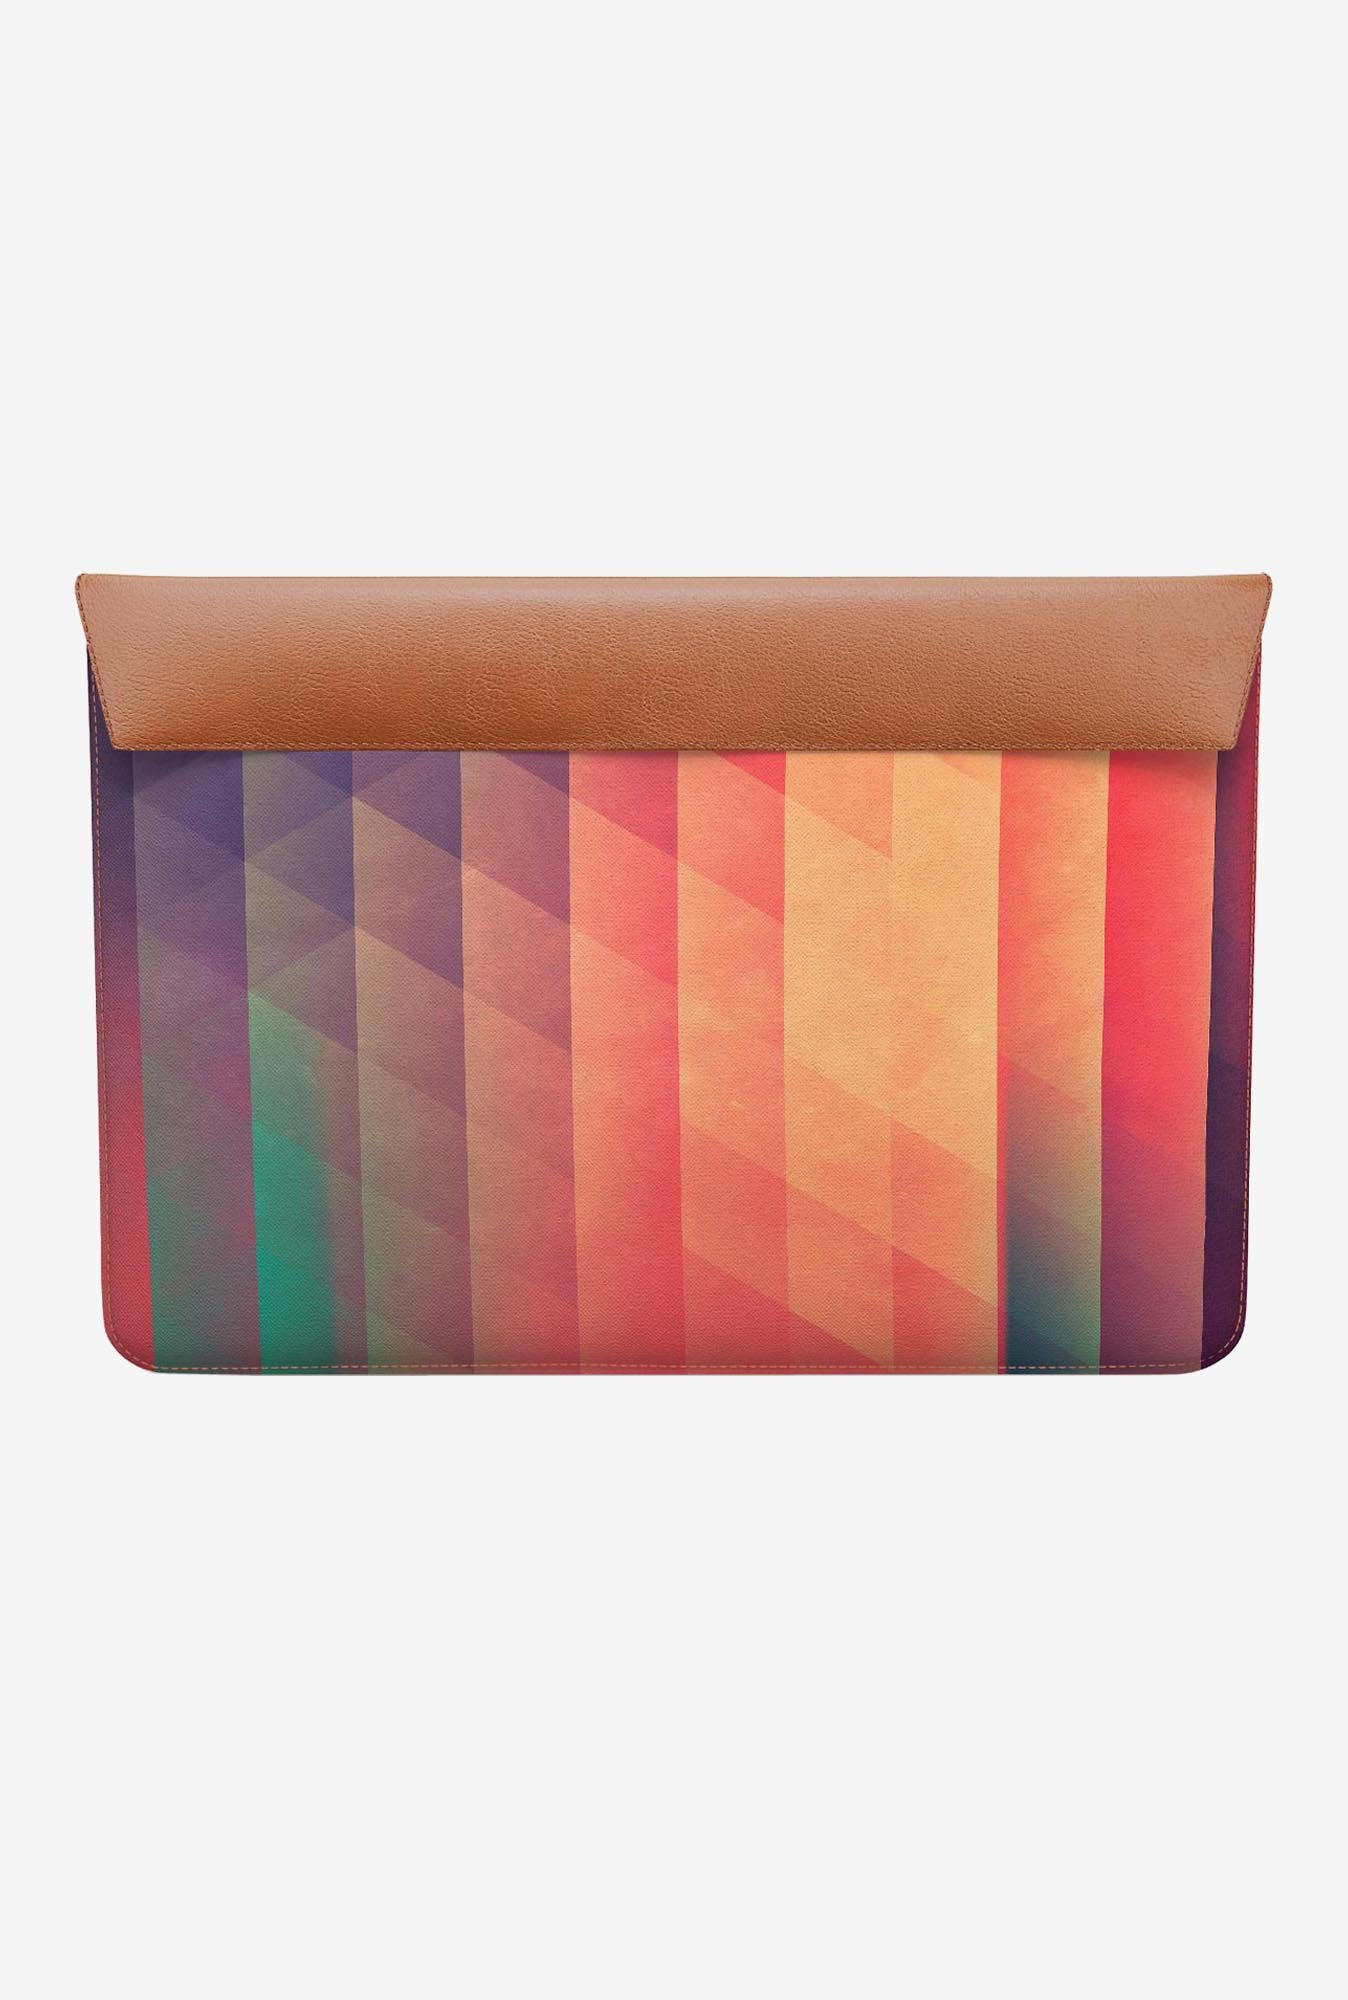 "DailyObjects Nww Phyyzz Macbook Air 11"" Envelope Sleeve"